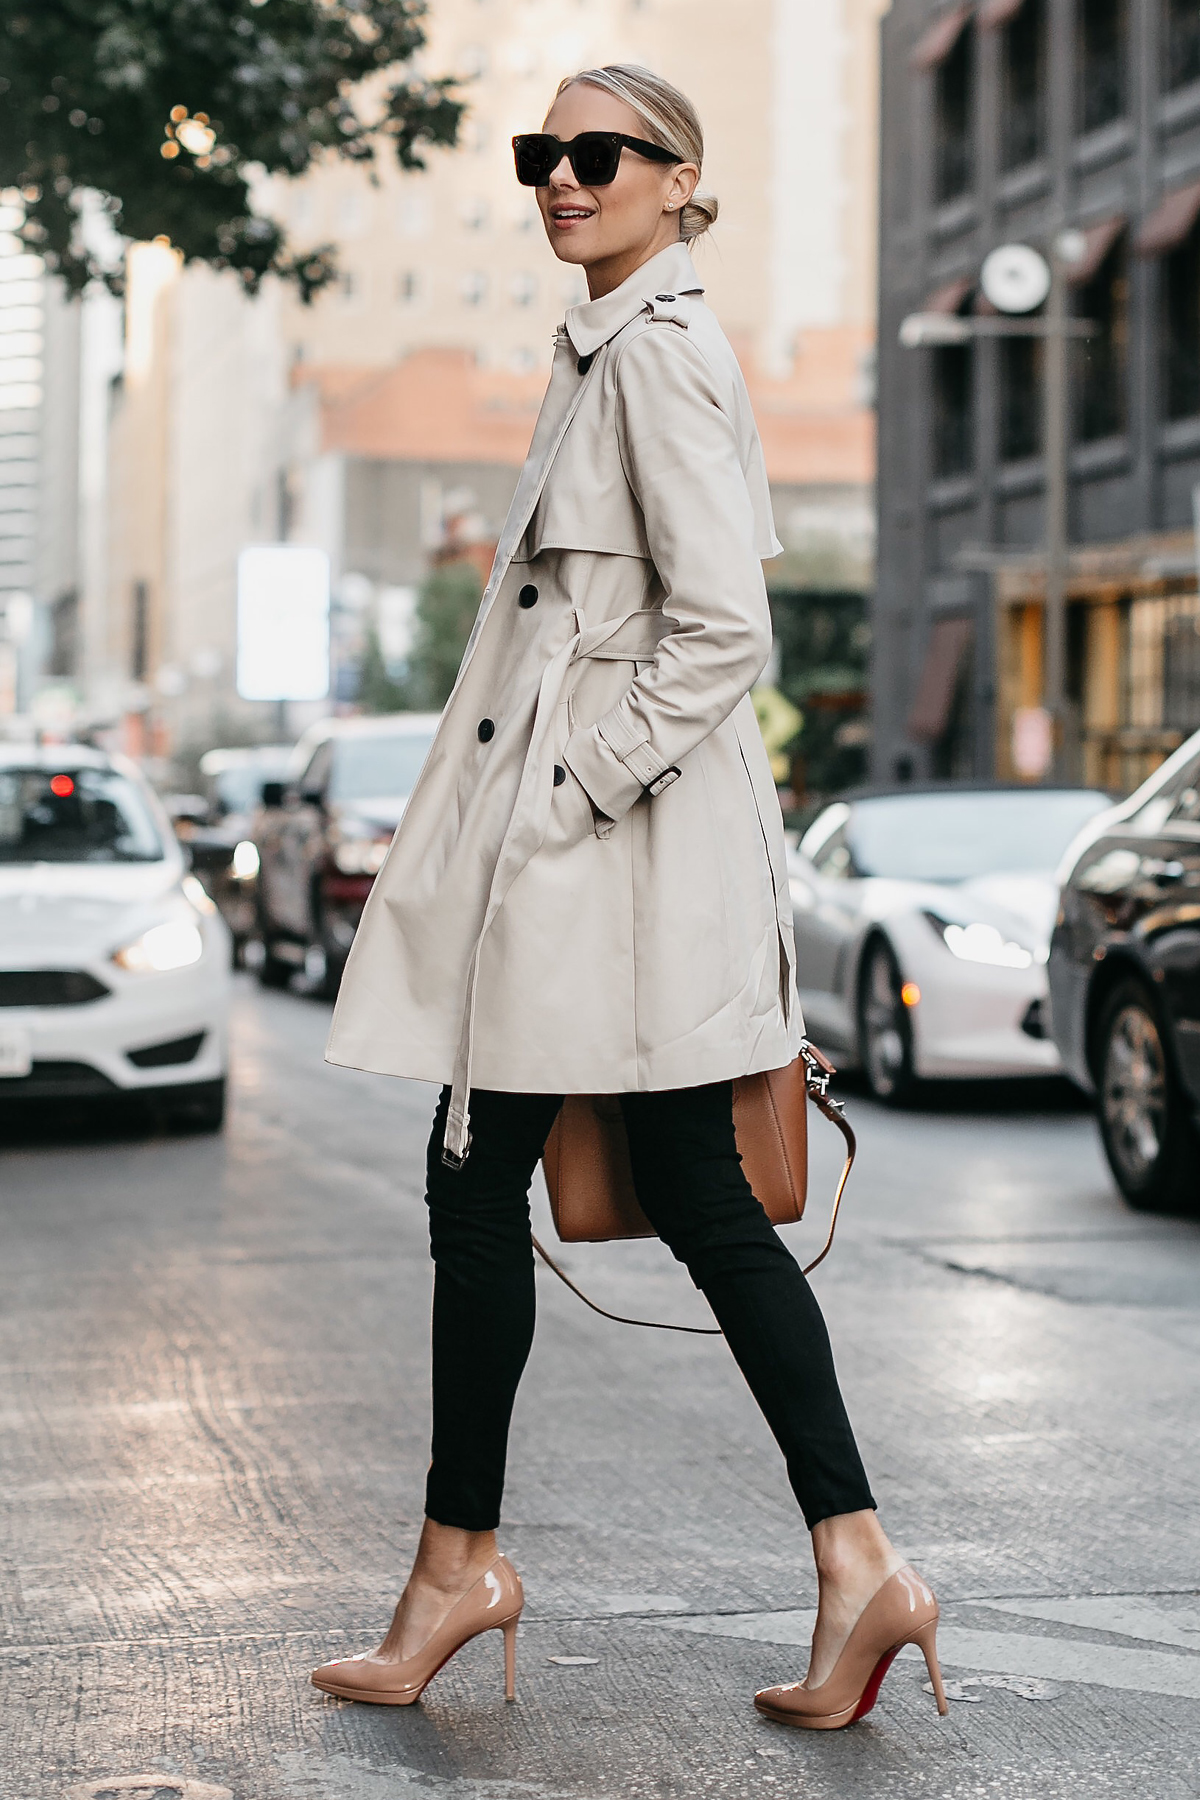 Blonde Woman Wearing Club Monaco Trench Coat Black Sweater Black Skinny Jeans Christian Louboutin Nude Pumps Fashion Jackson Dallas Blogger Fashion Blogger Street Style